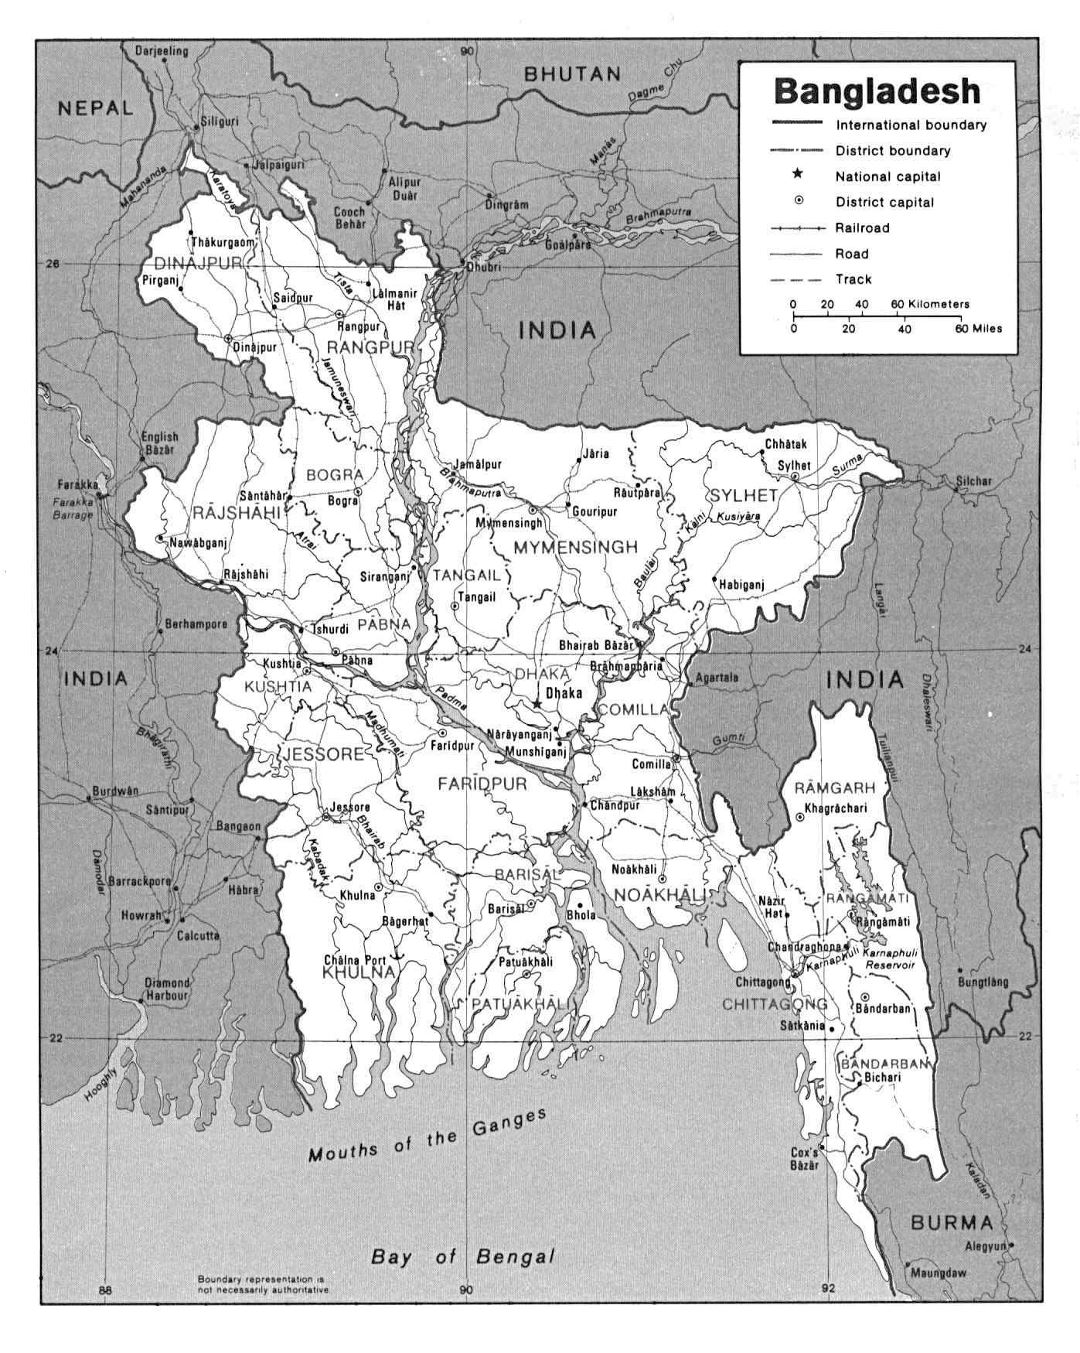 Large political and administrative map of Bangladesh with roads and major cities